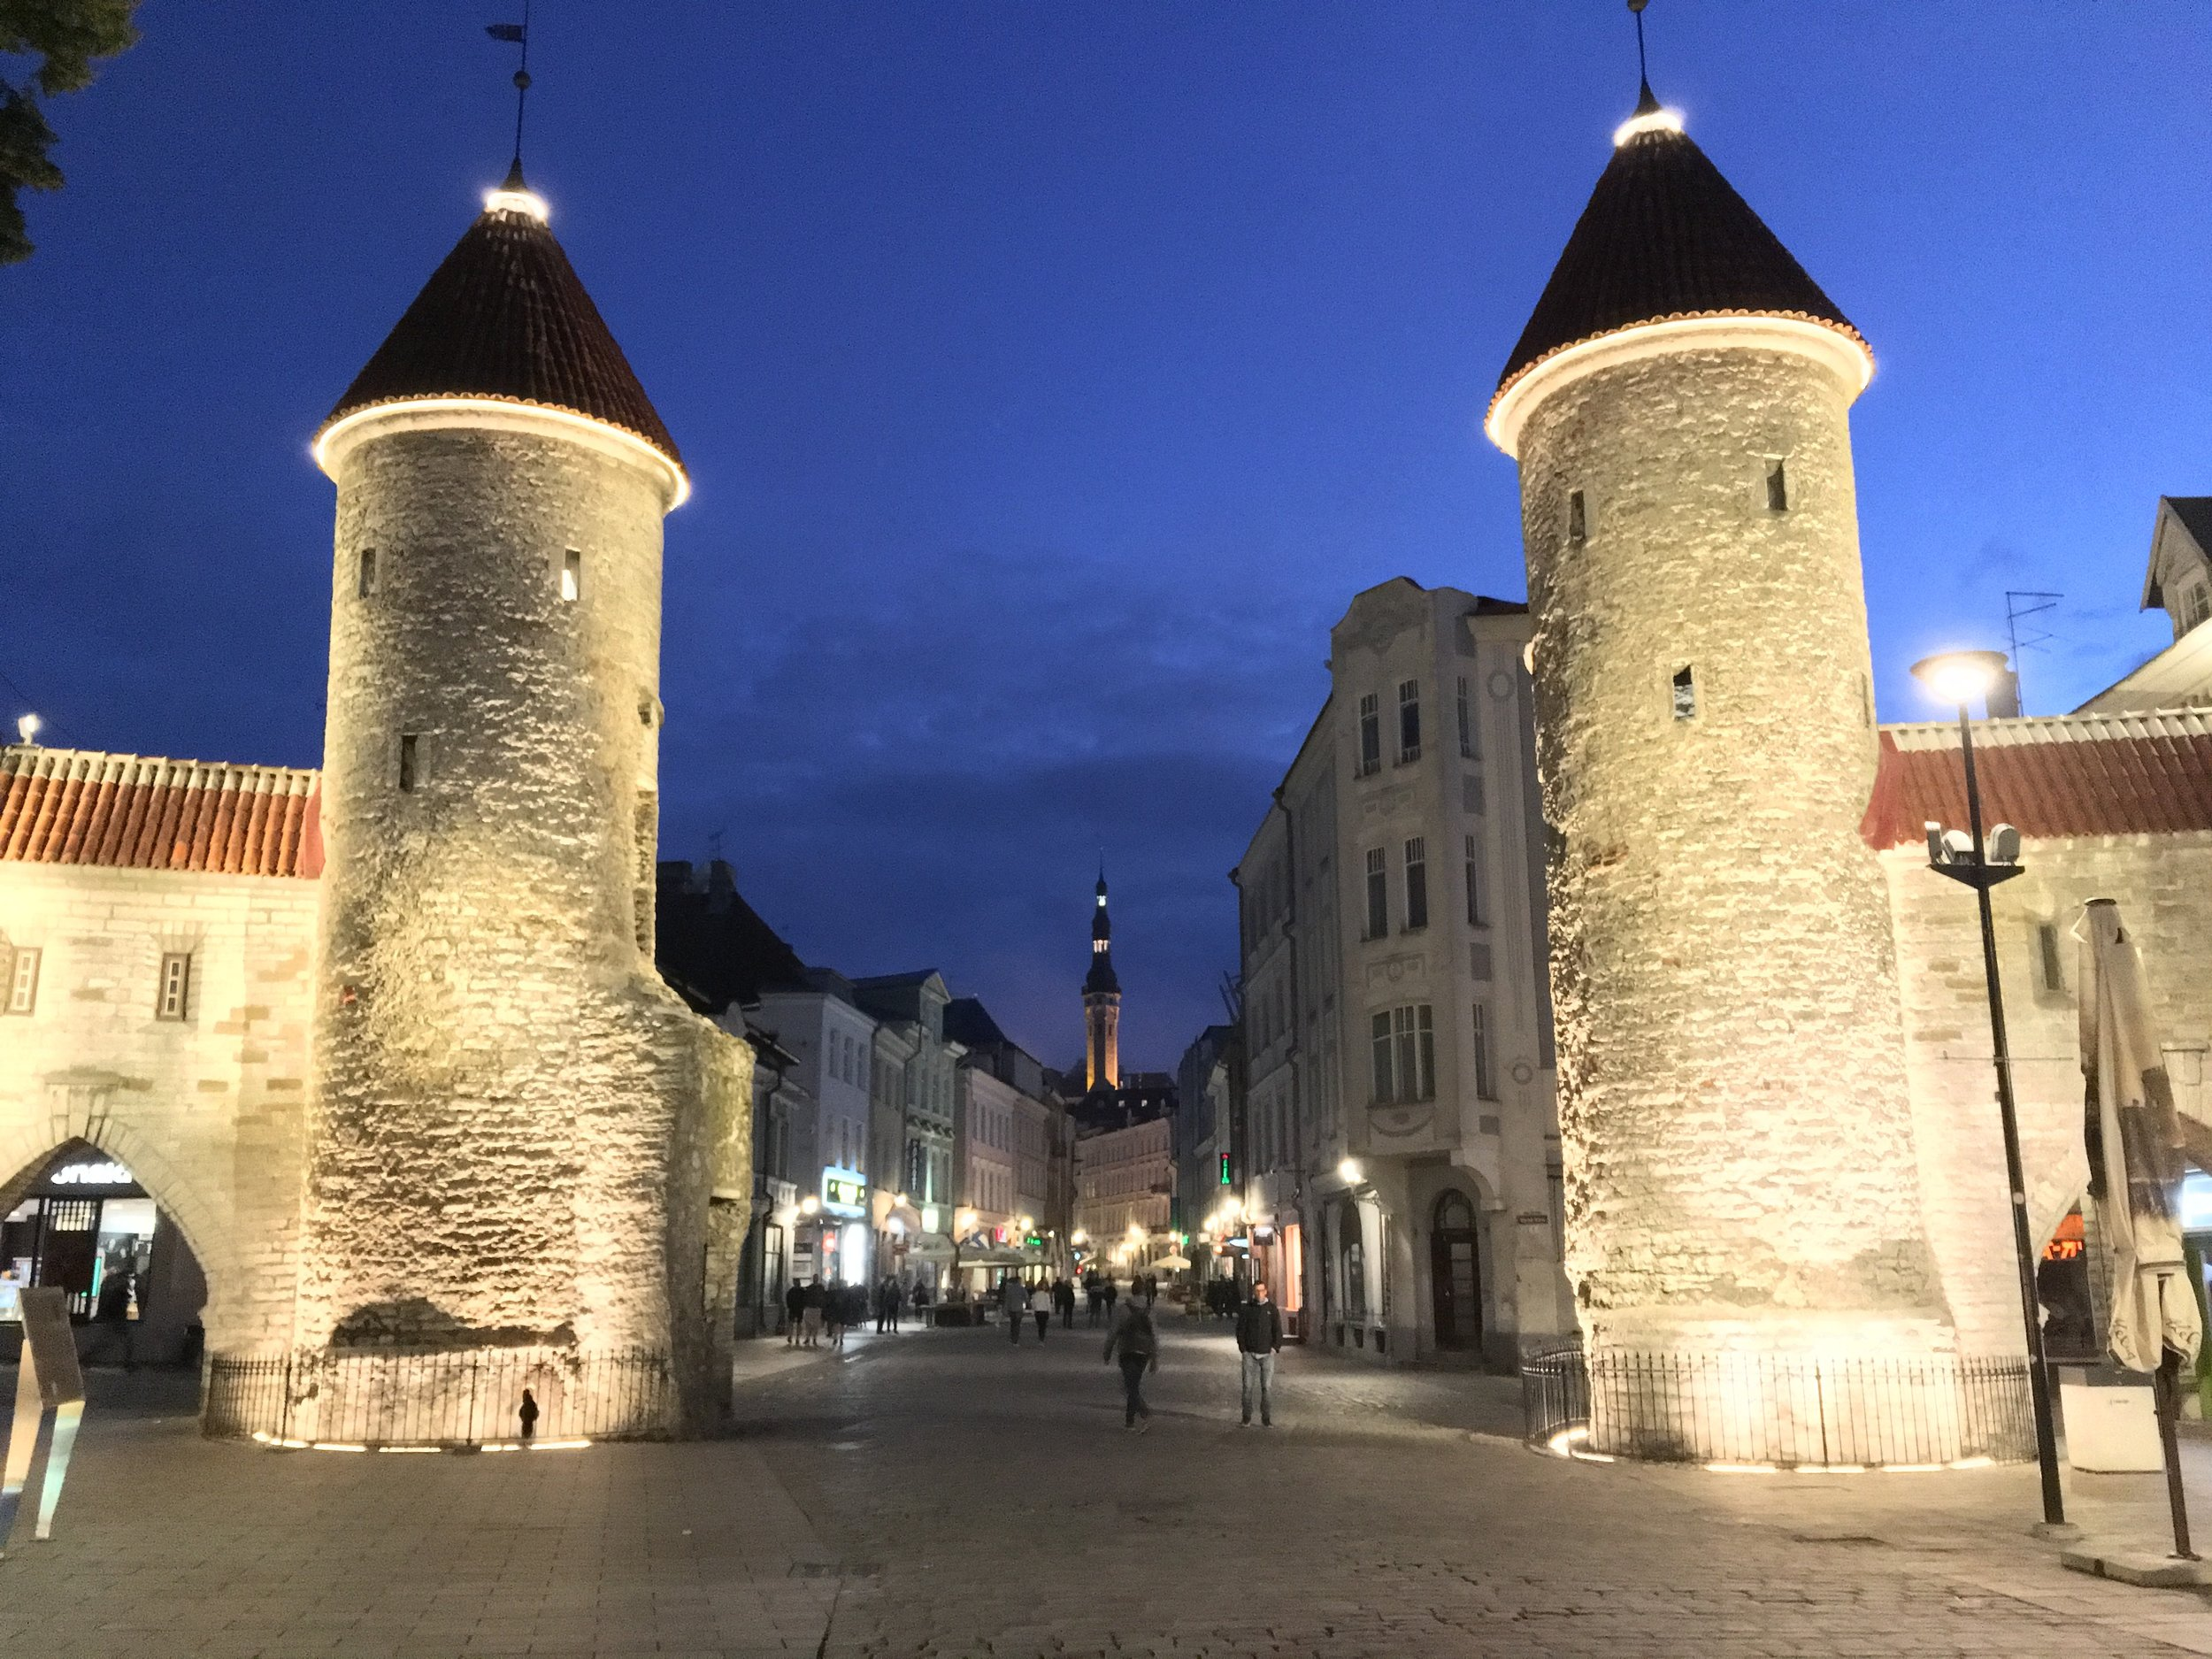 The entrance to Old Tallinn at 12:30AM